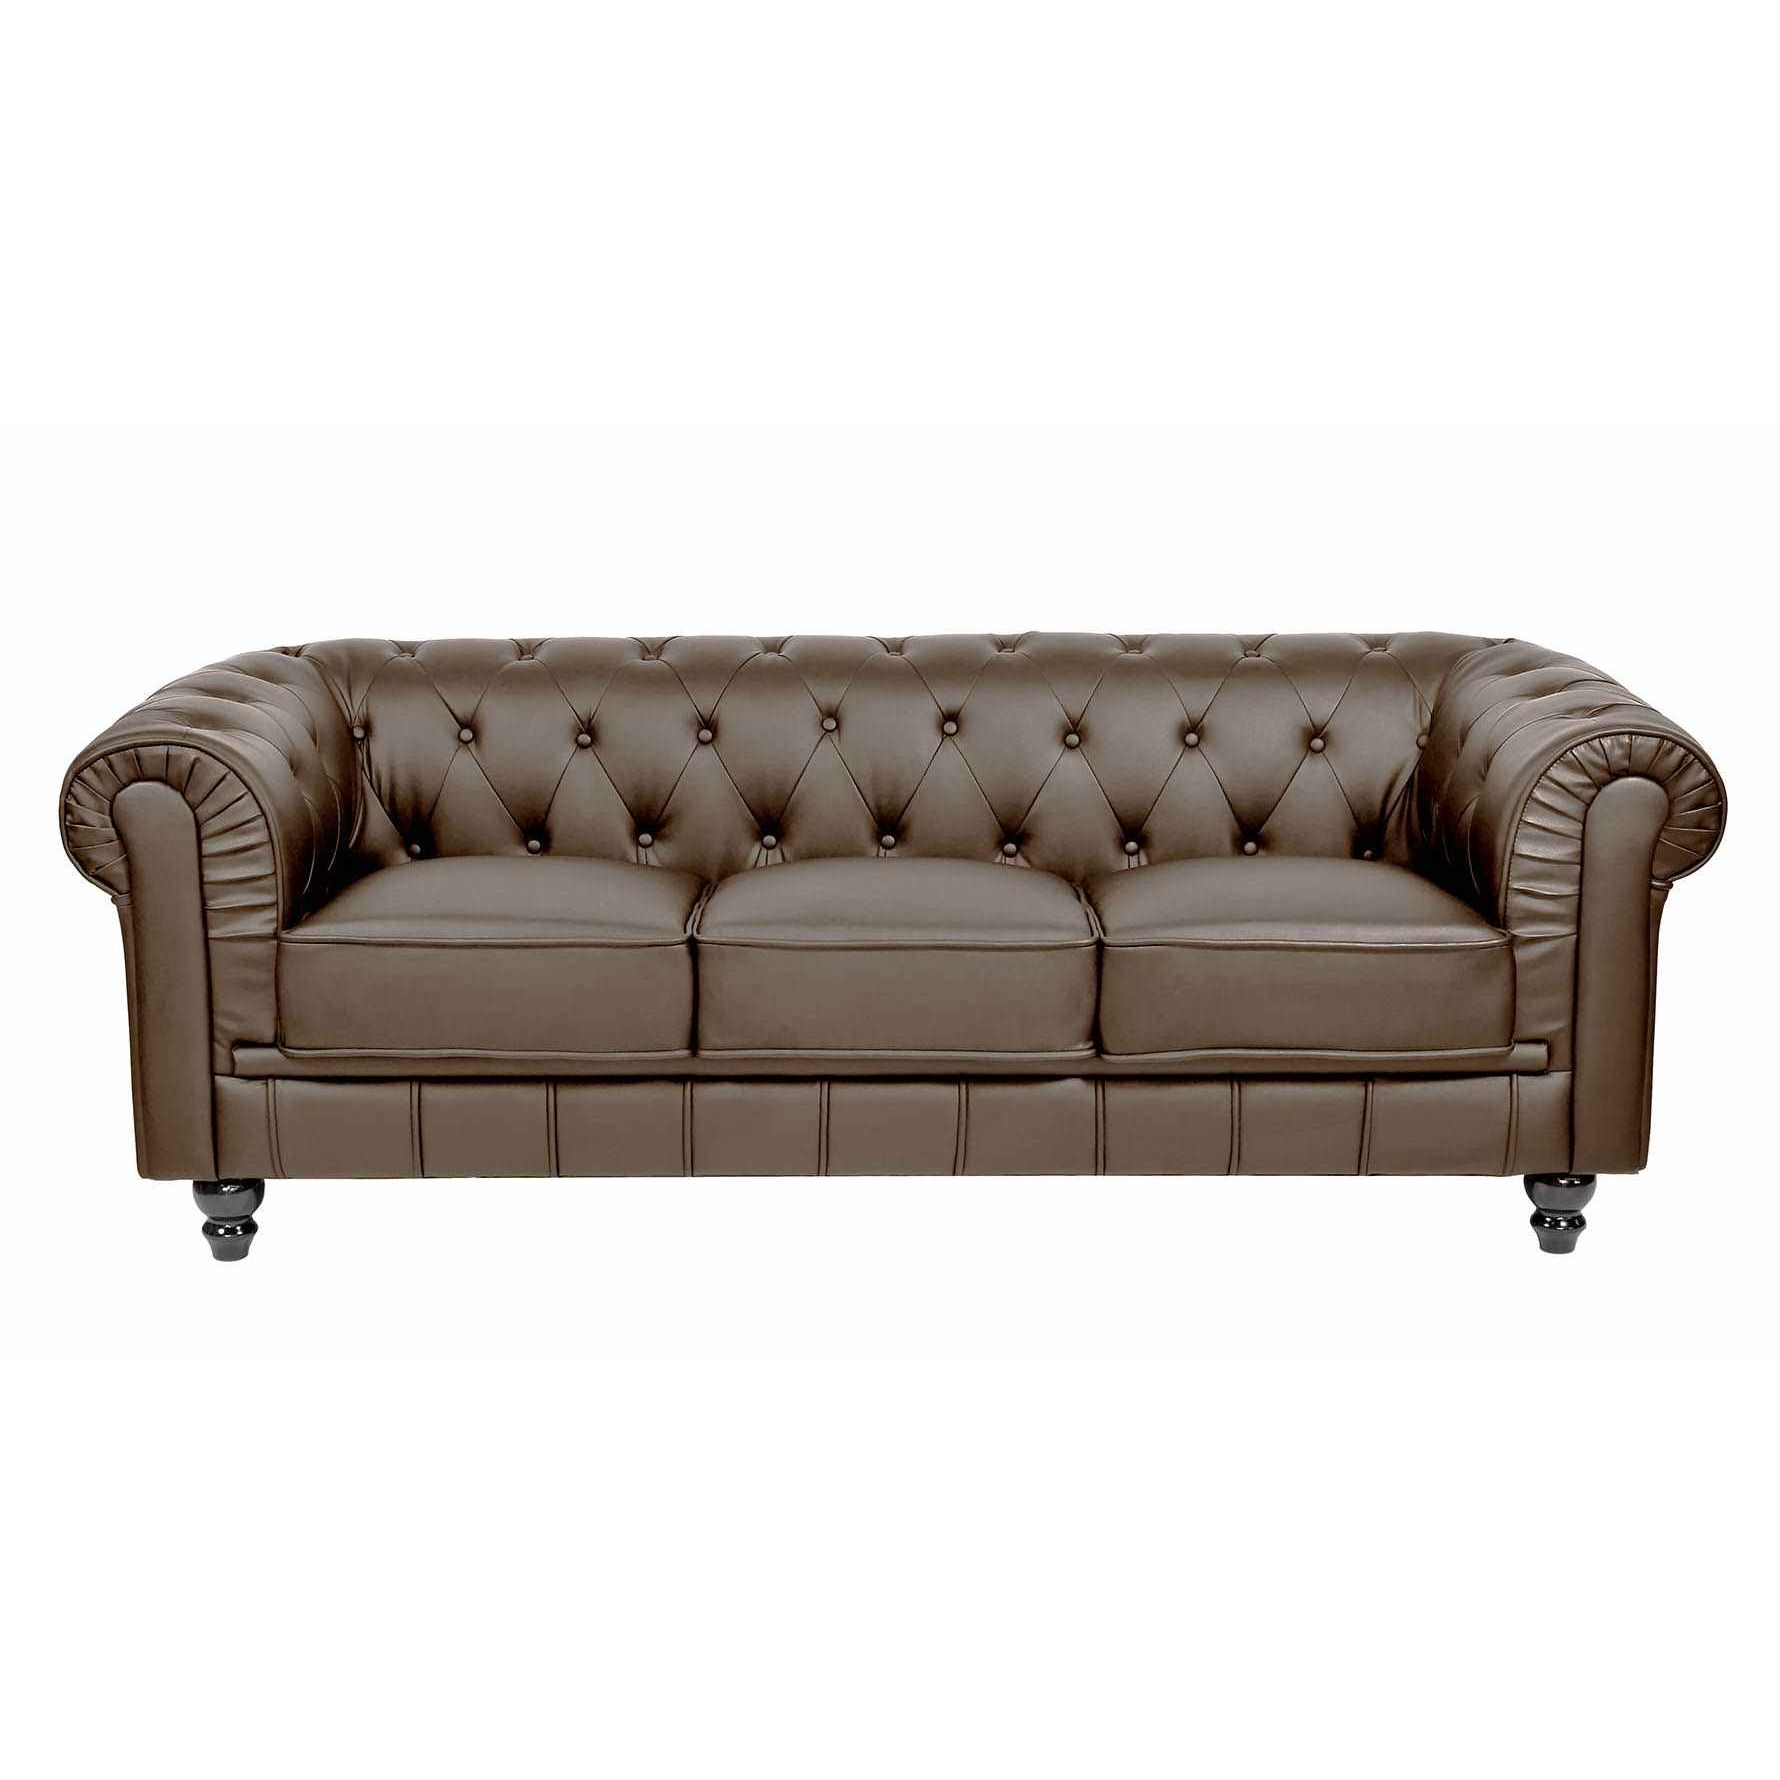 deco in paris canape 3 places marron chesterfield can chester 3p pu marron. Black Bedroom Furniture Sets. Home Design Ideas